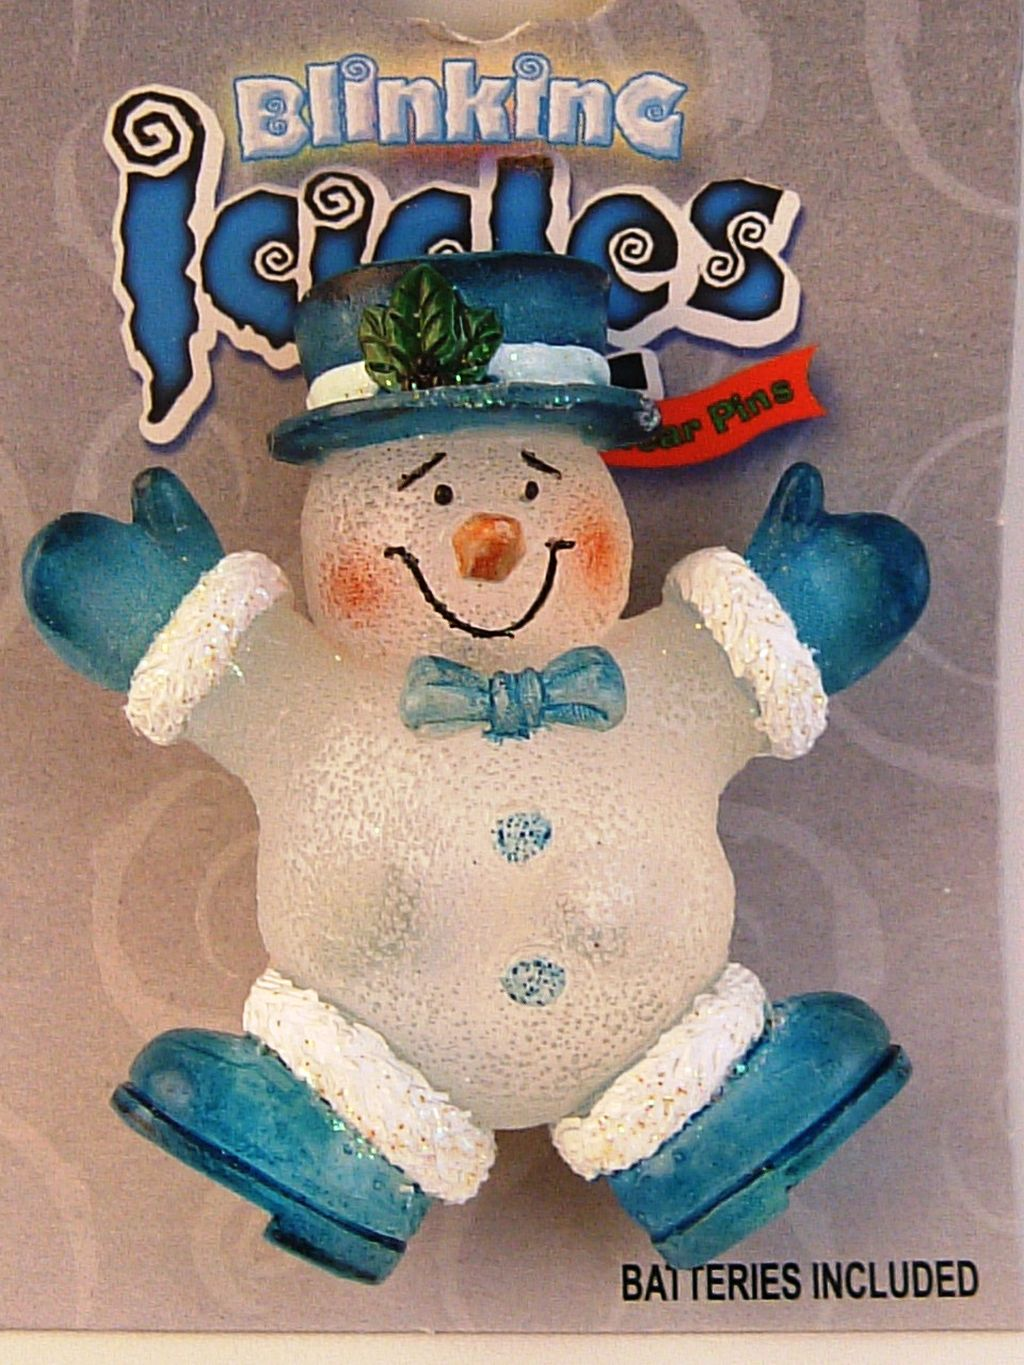 Blinking Icicle Christmas Lights Blue Snowman Brooch Pin, Batteries Included